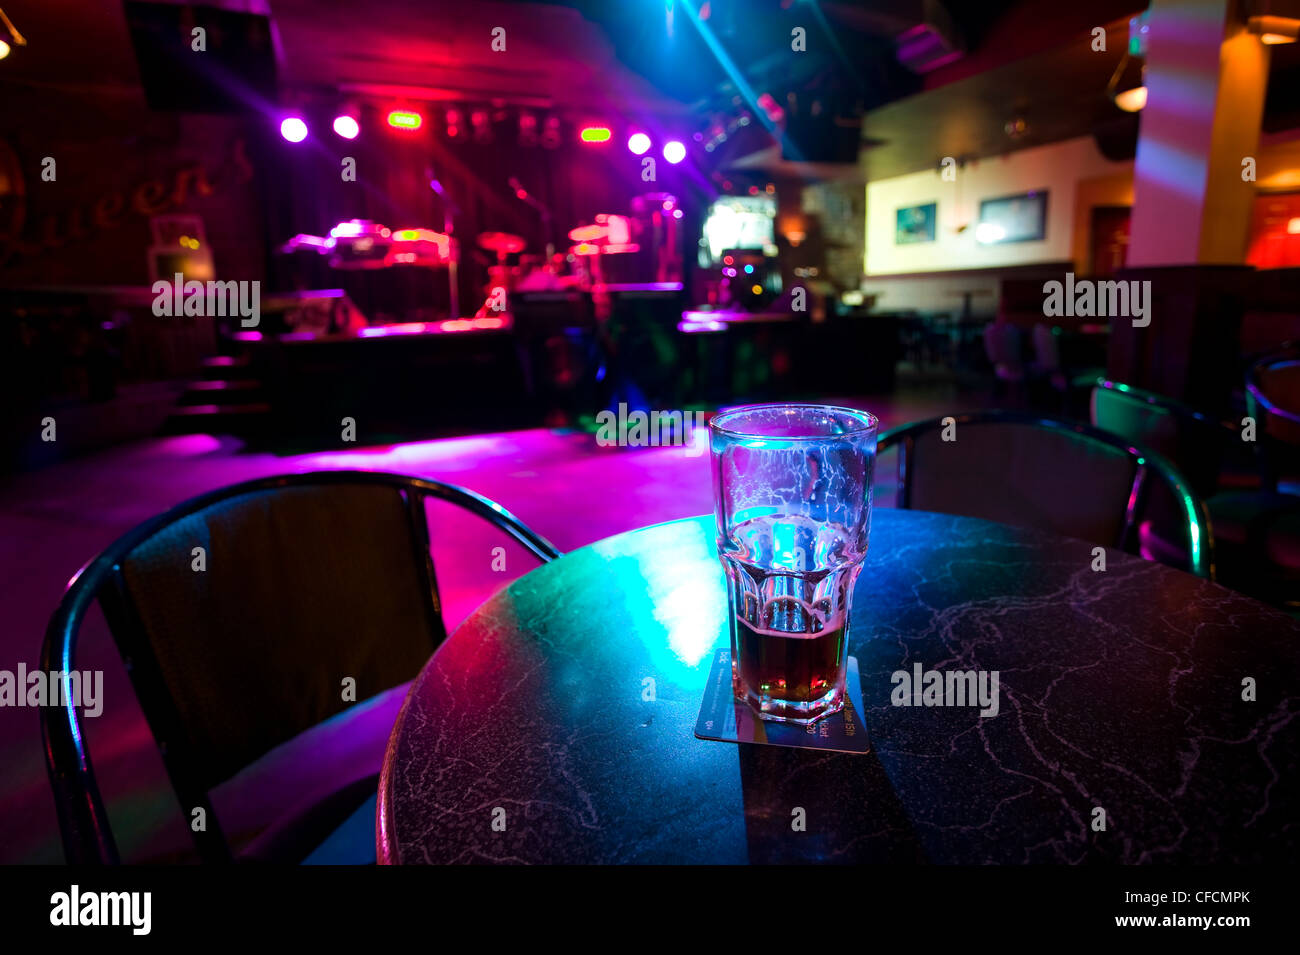 A Half Empty Beer Glass Sits On A Table Of A Nightclub